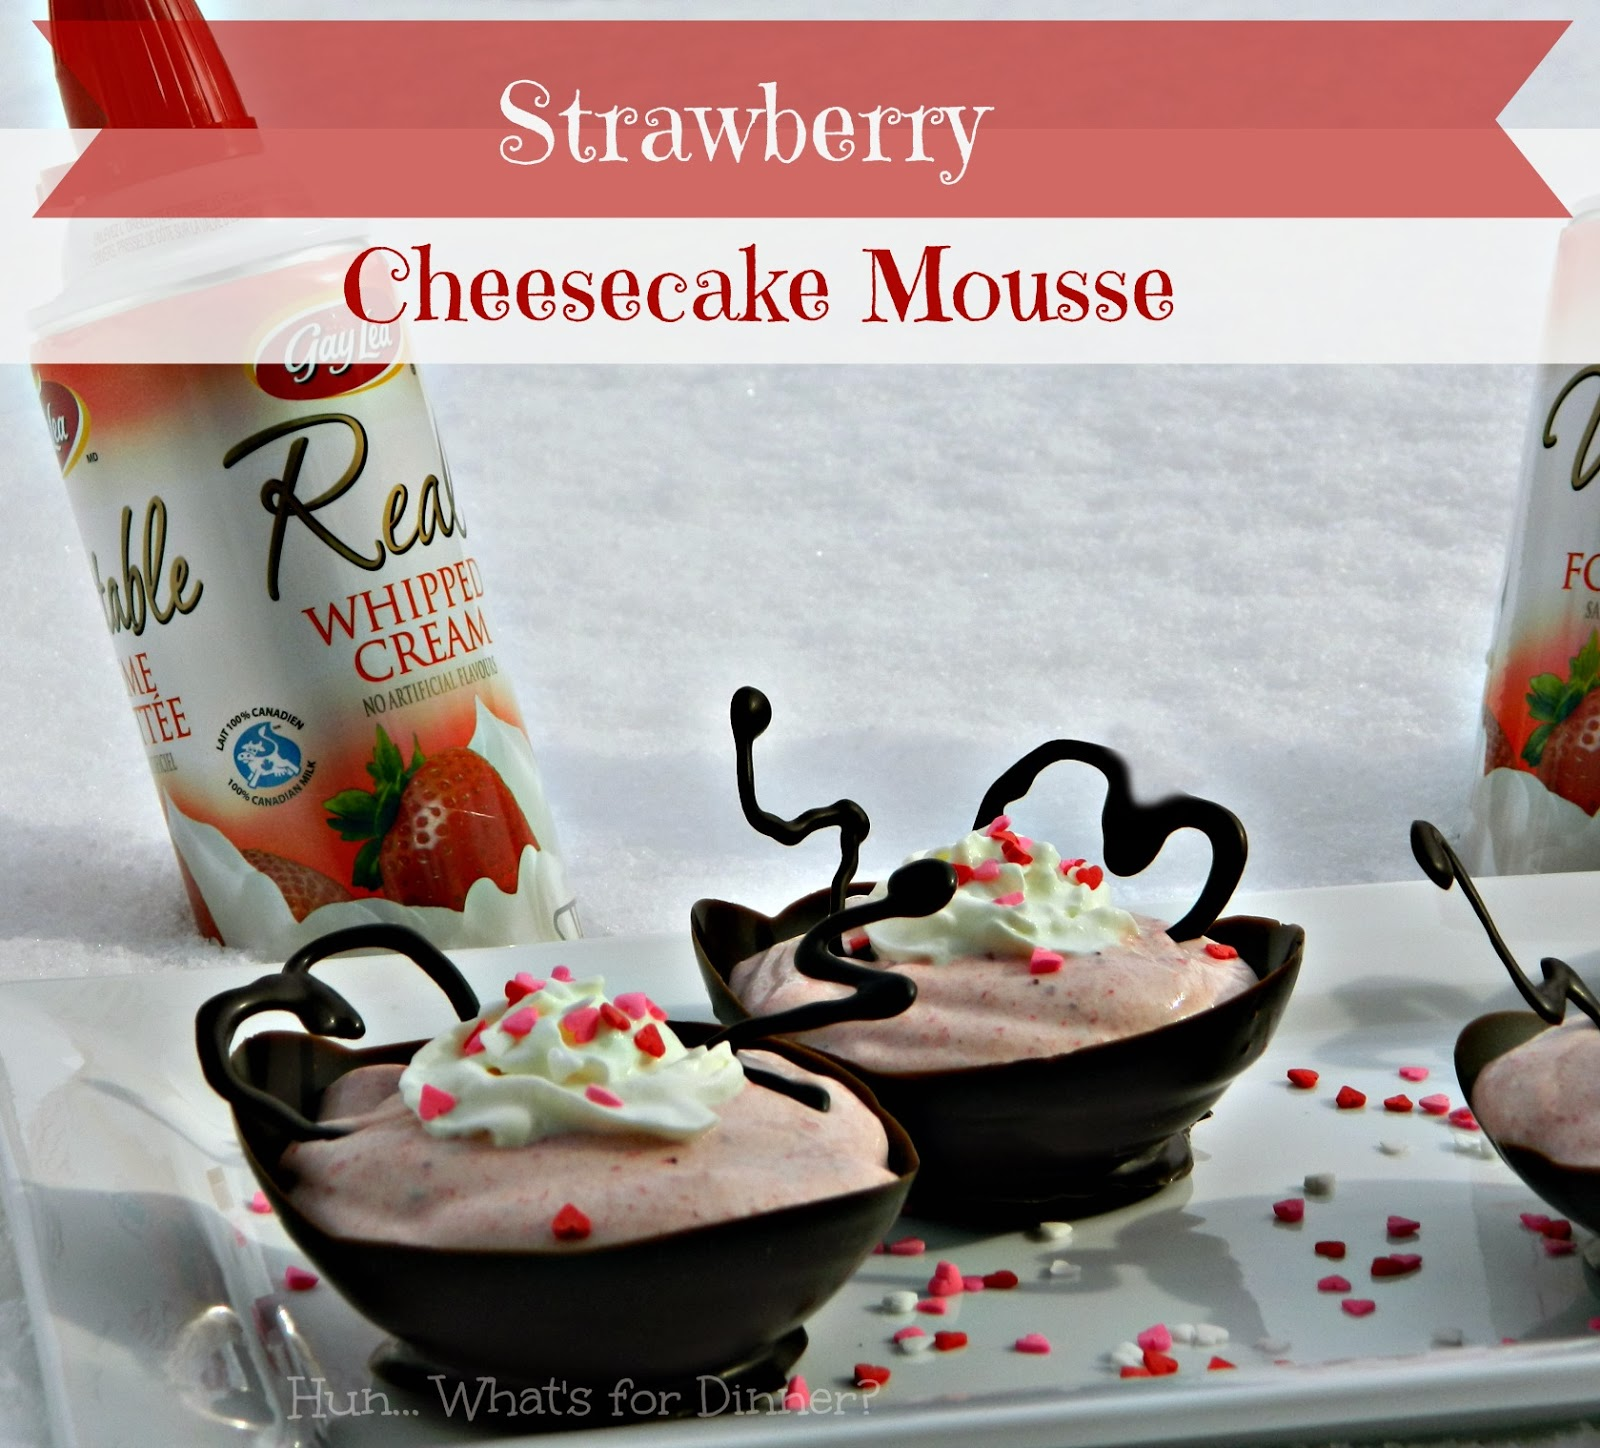 Strawberry Cheesecake Mousse in Chocolate Bowls- www.hunwhatsfordinner.com